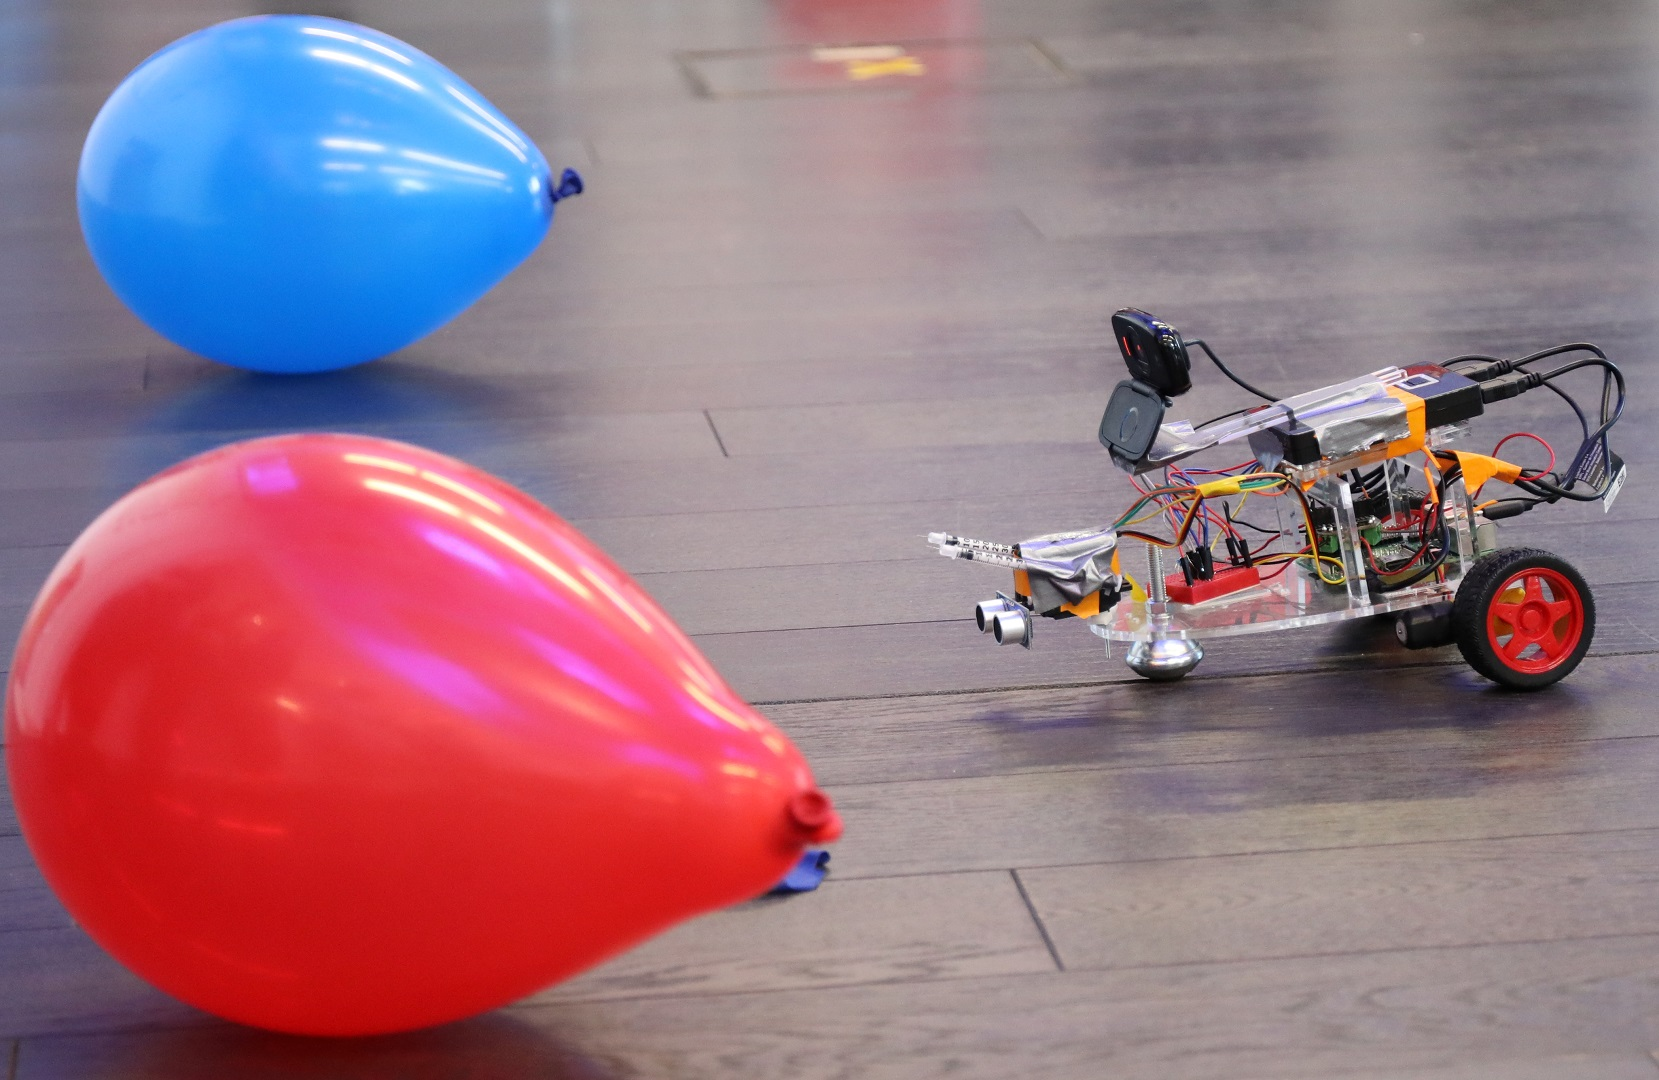 Photo of a simple robot, built by SWC students, hesitating between two balloons of different color